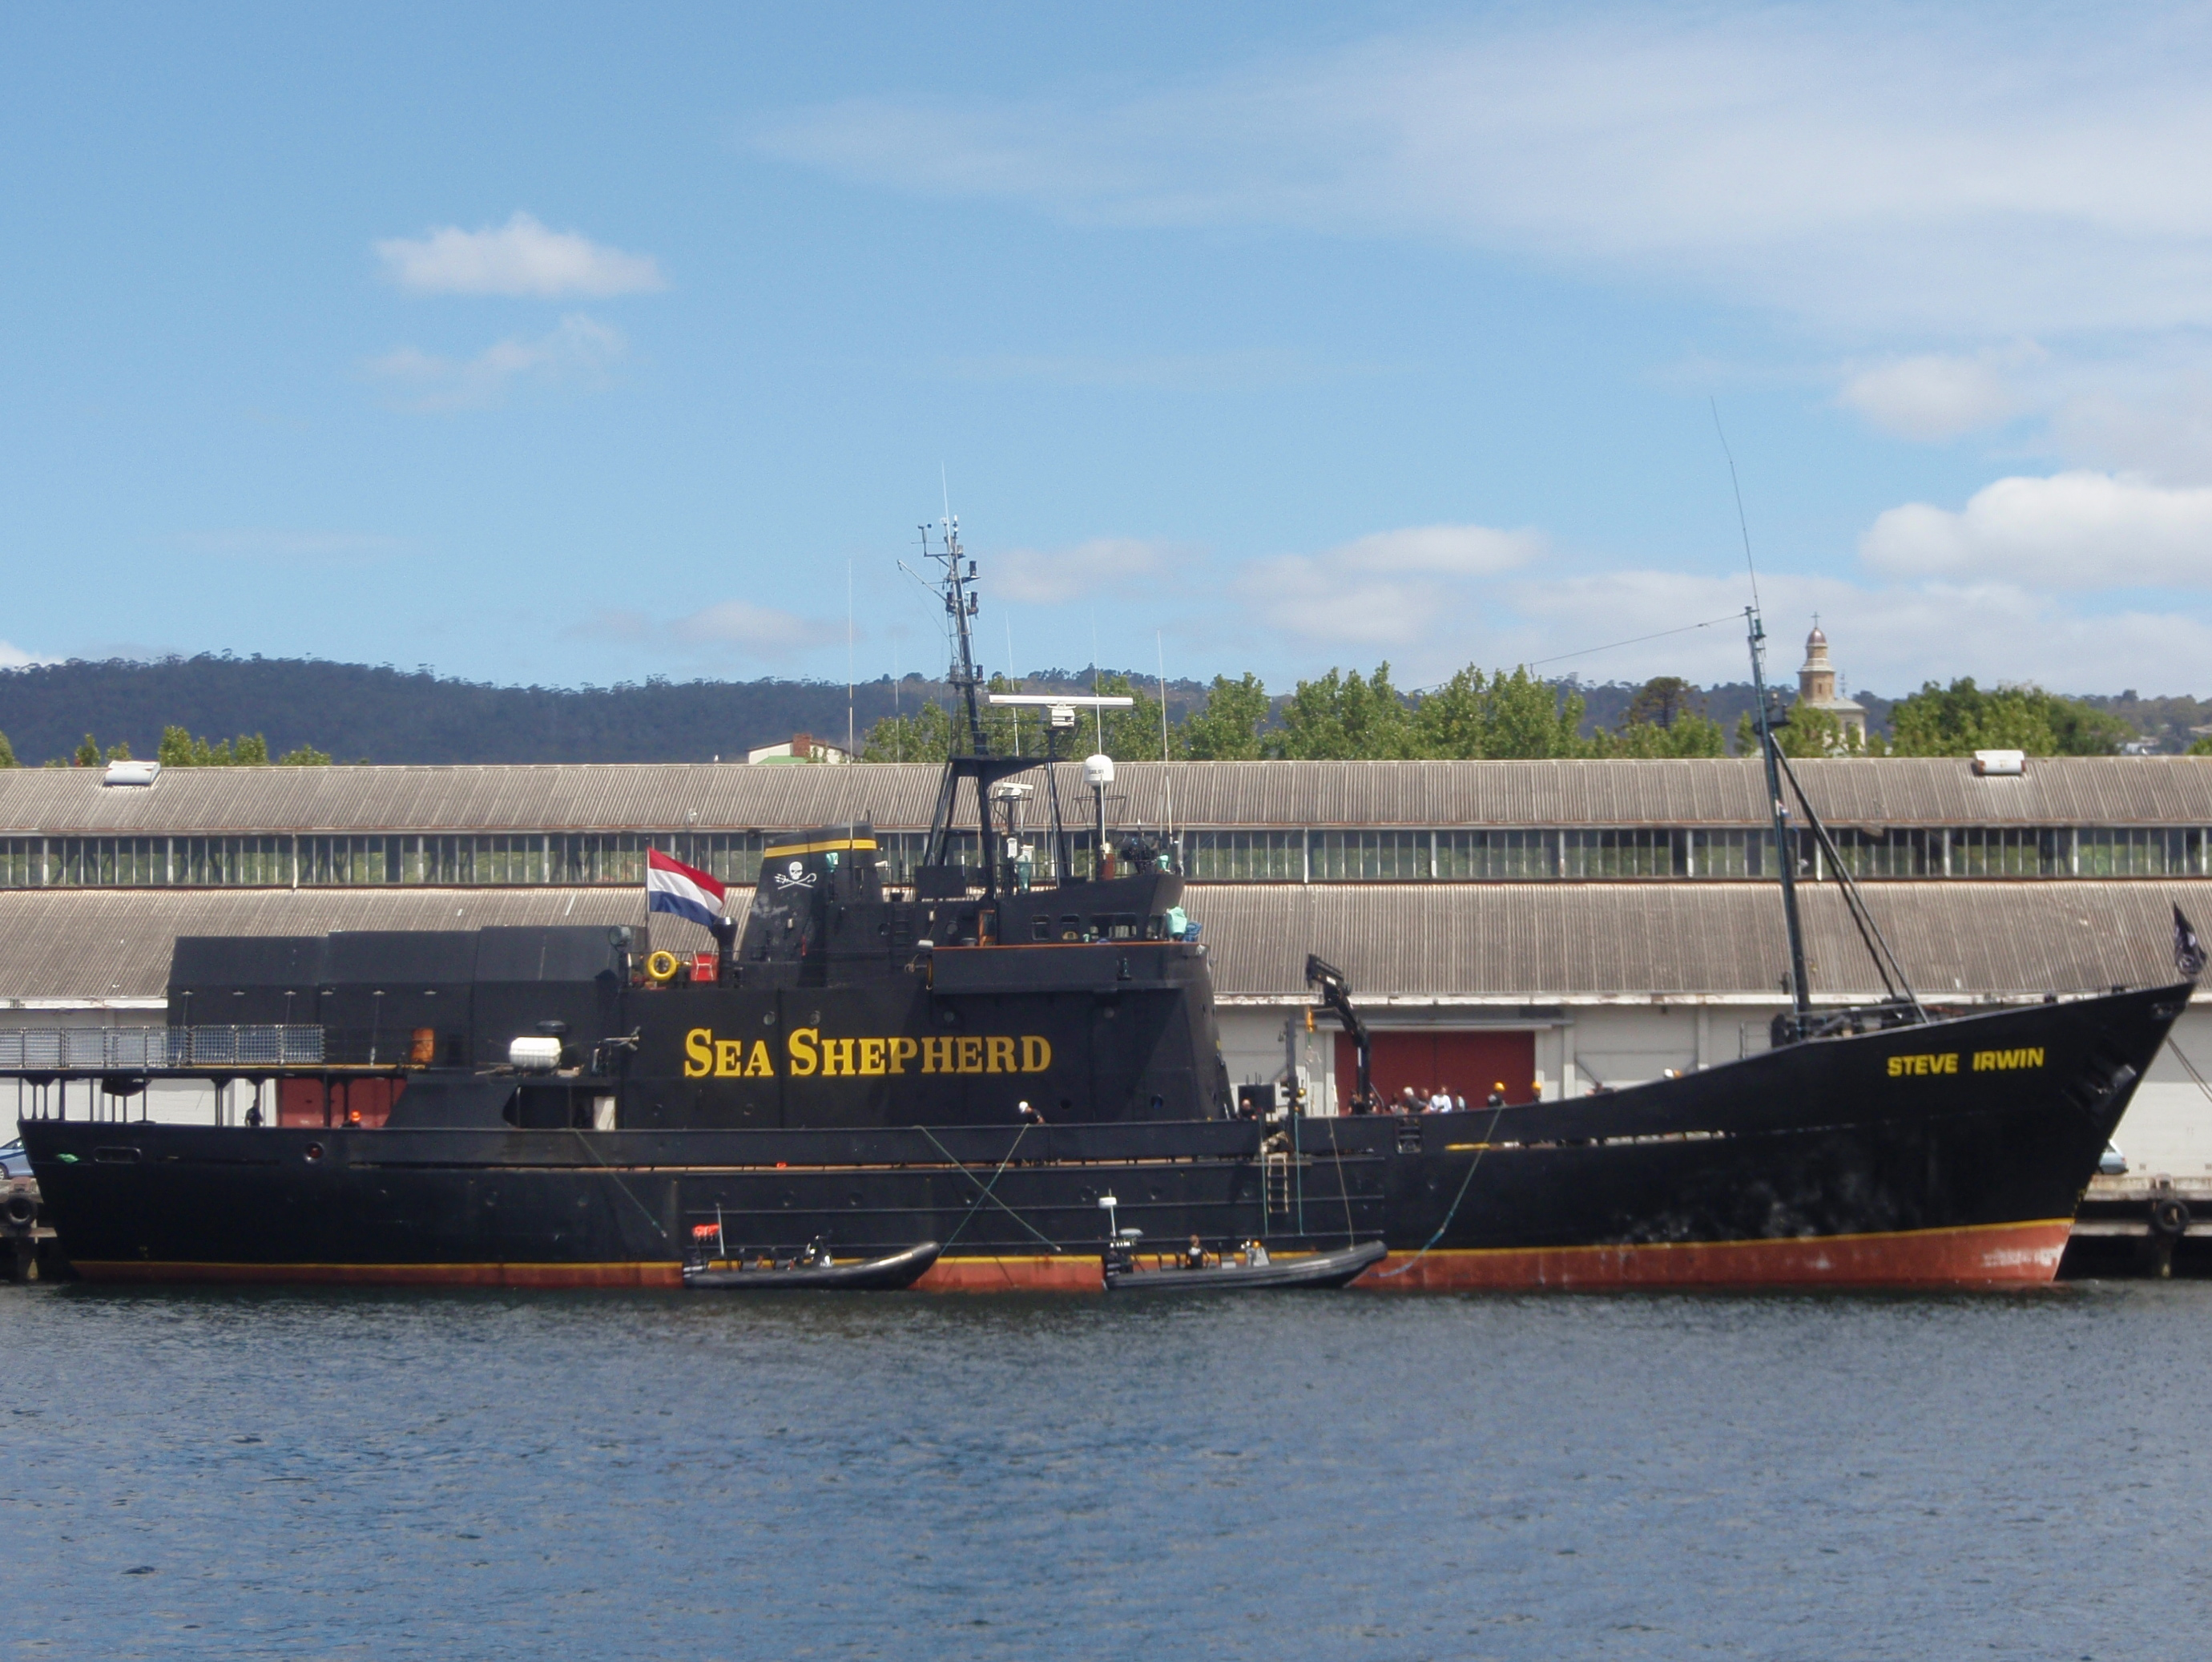 File:Steve Irwin docked in Hobart.JPG - Wikipedia, the free ...